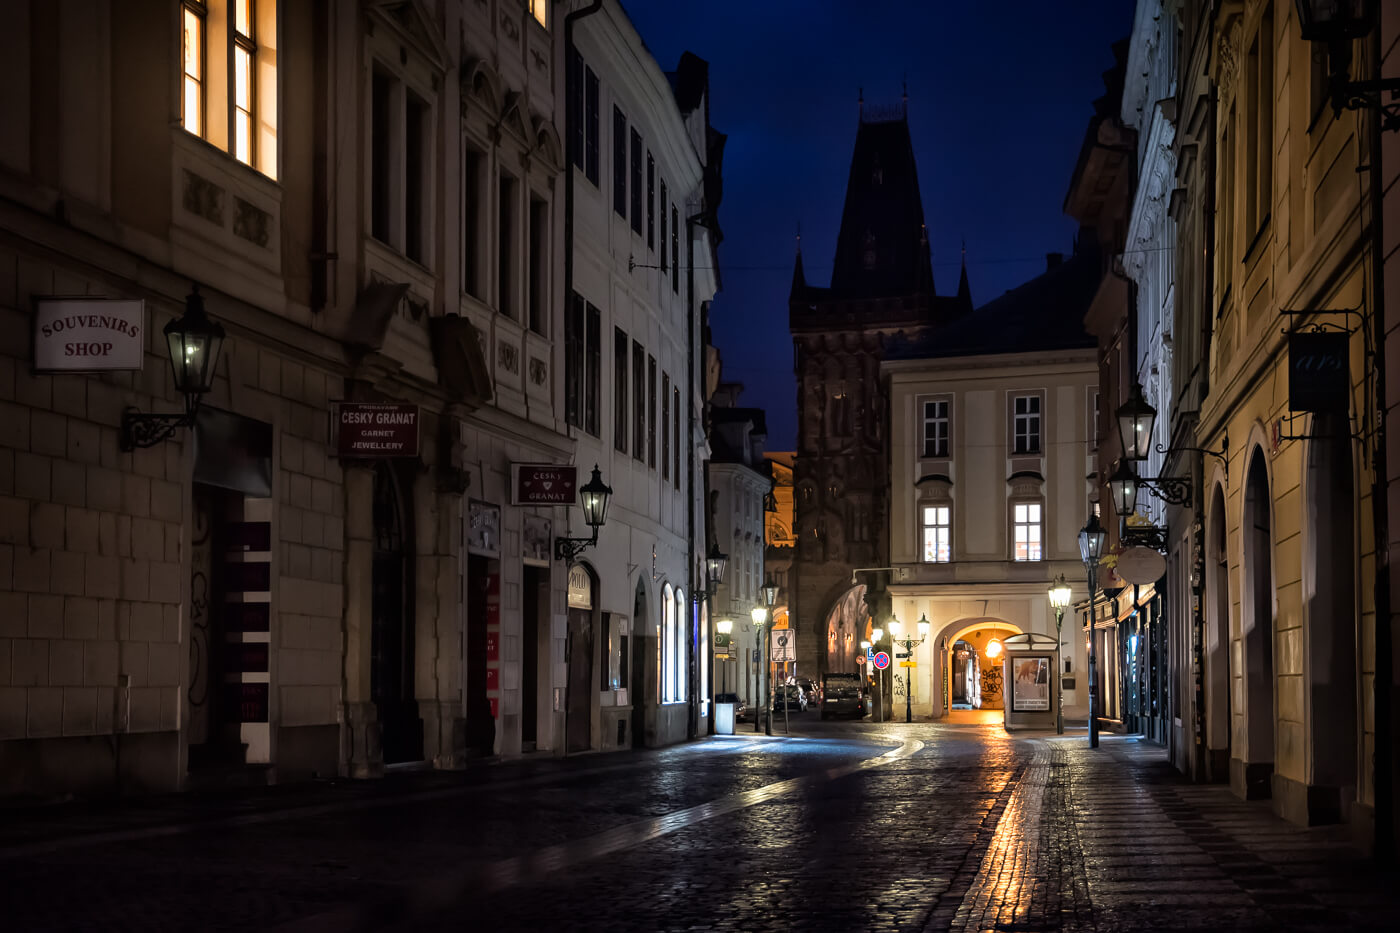 Street at night, Prague - Photograph by Zed Sindelar / CuriousZed